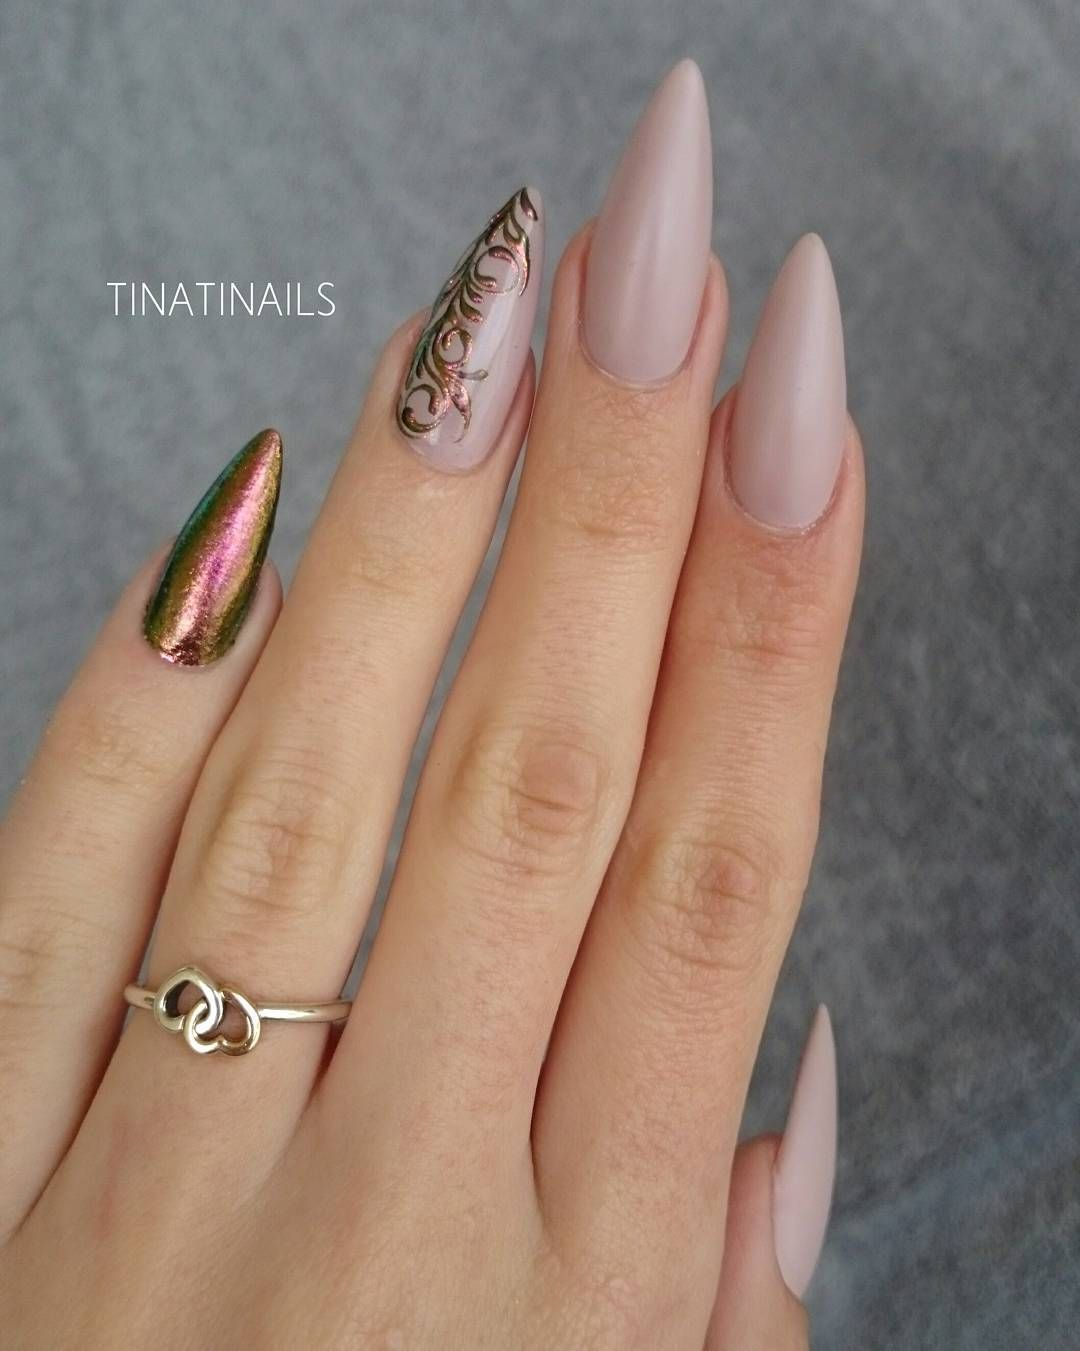 """40 Likes, 3 Comments - TINATINAILS (@tinatinails) on Instagram: """"#my ..."""